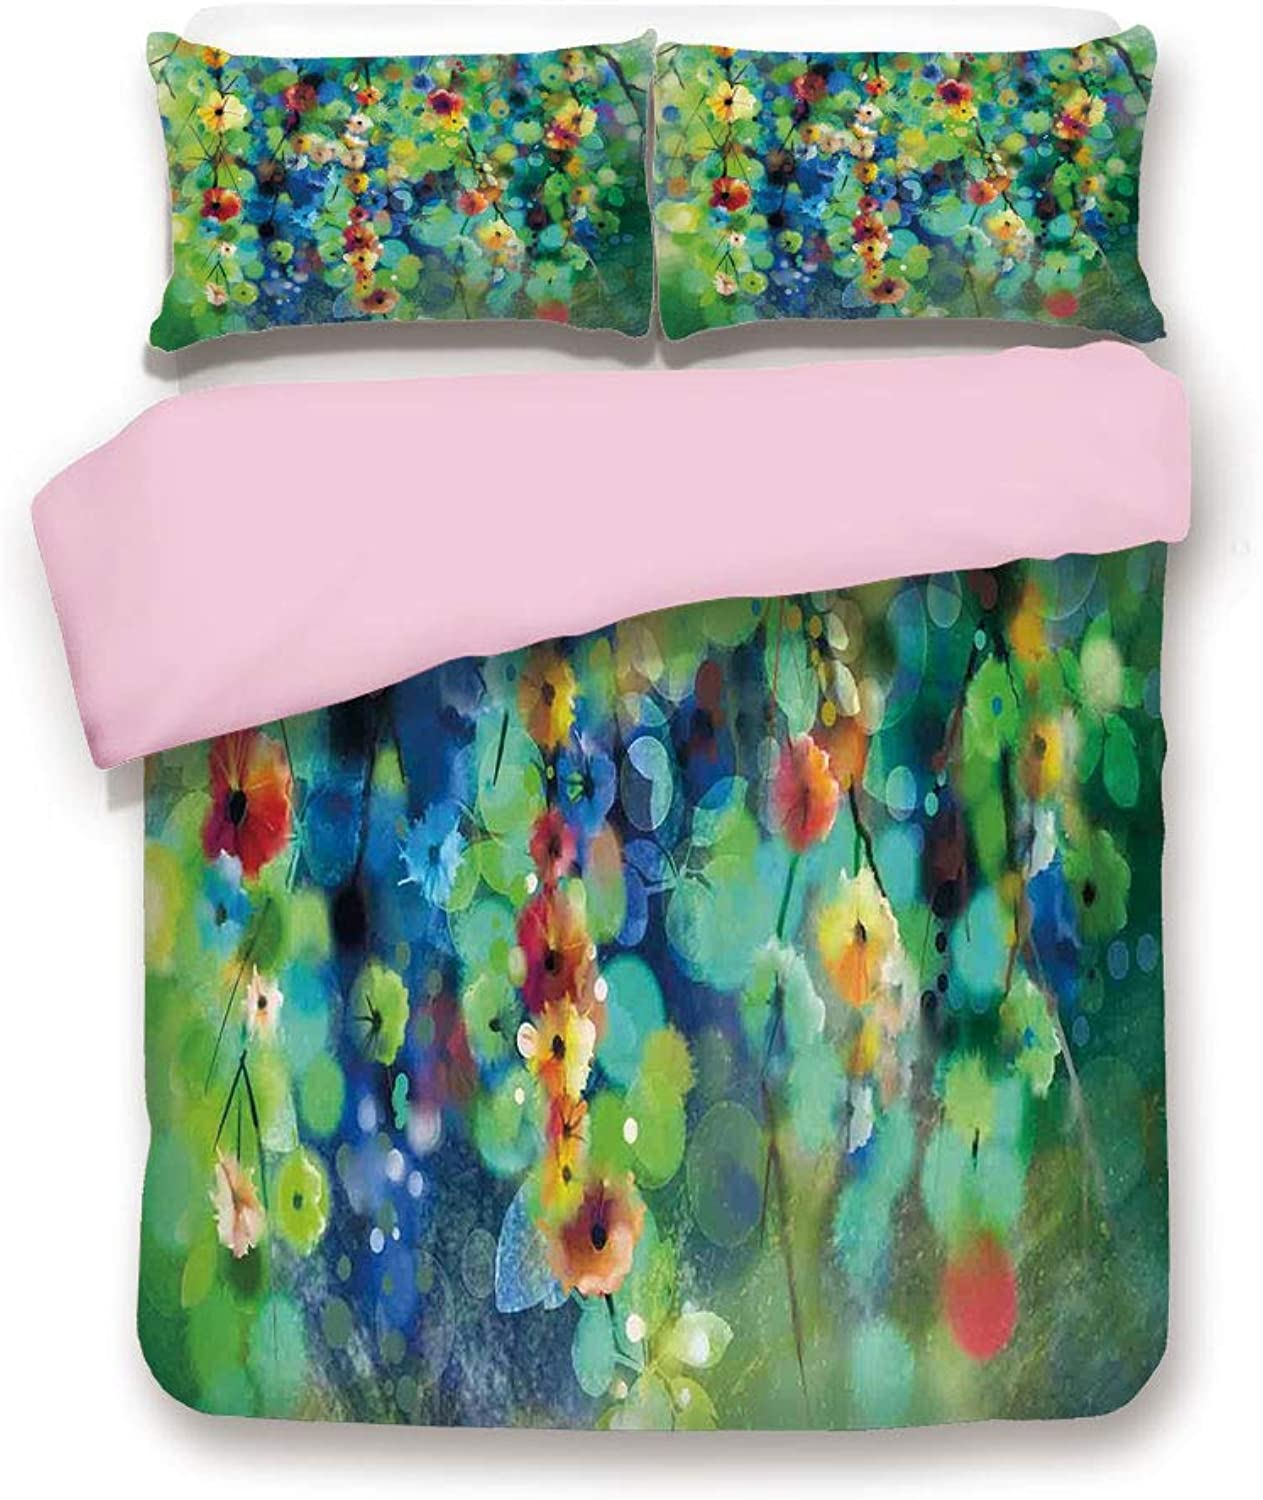 Pink Duvet Cover Set,Twin Size,Vibrant Blooms Clusters Down from Branch Spring Season Image,Decorative 3 Piece Bedding Set with 2 Pillow Sham,Best Gift for Girls Women,Green bluee